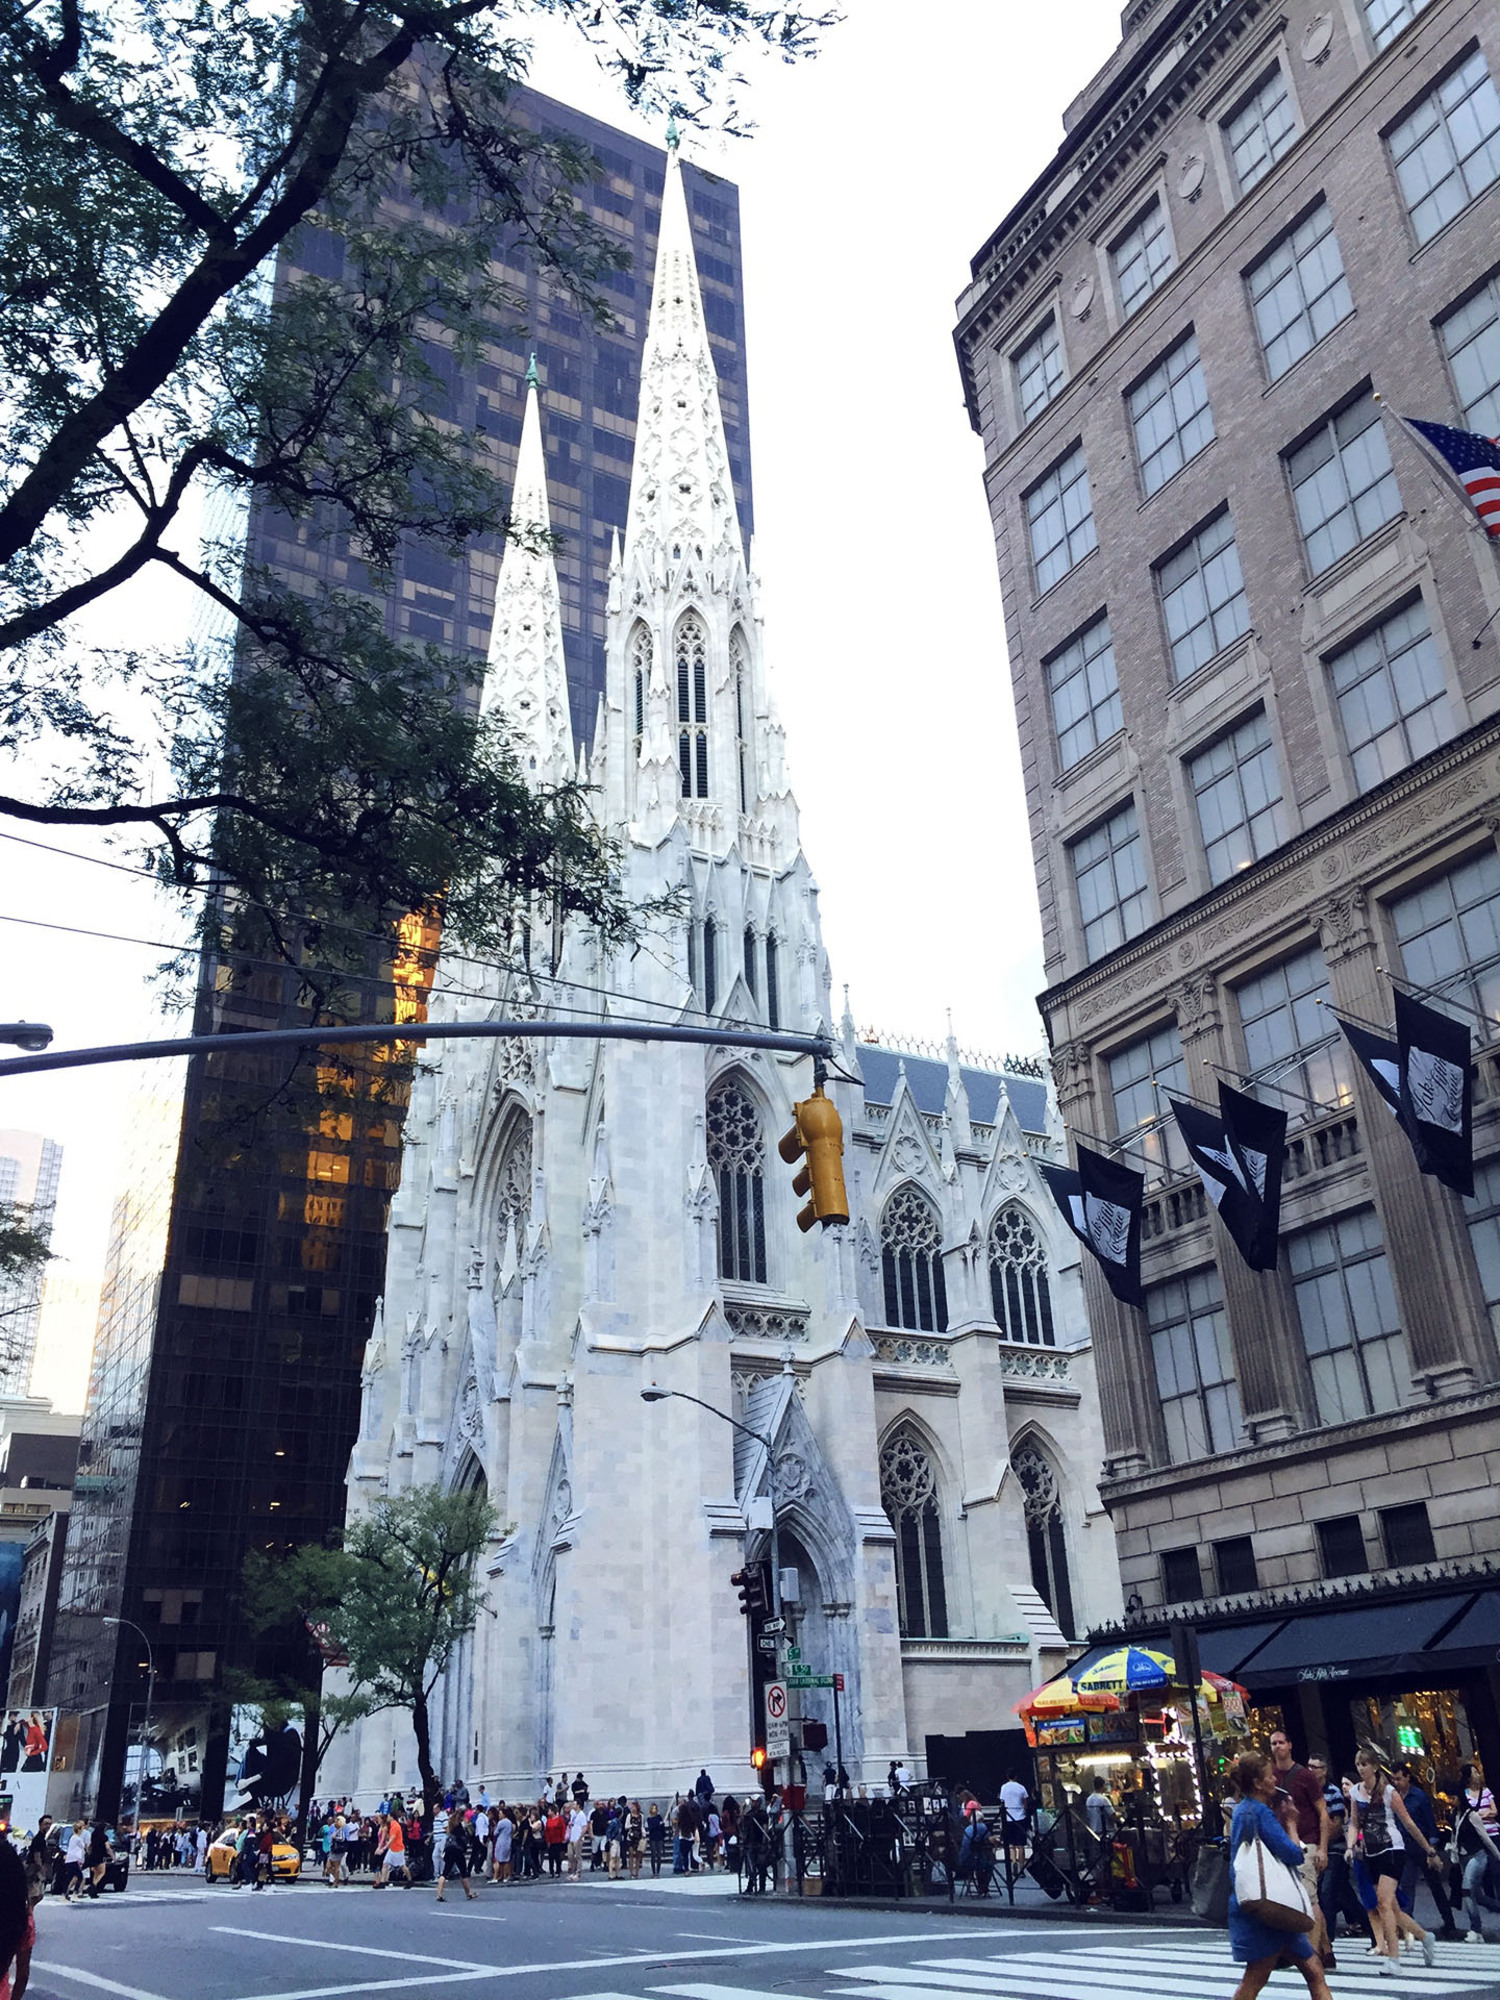 St. Patrick's Cathedral Restored Facade